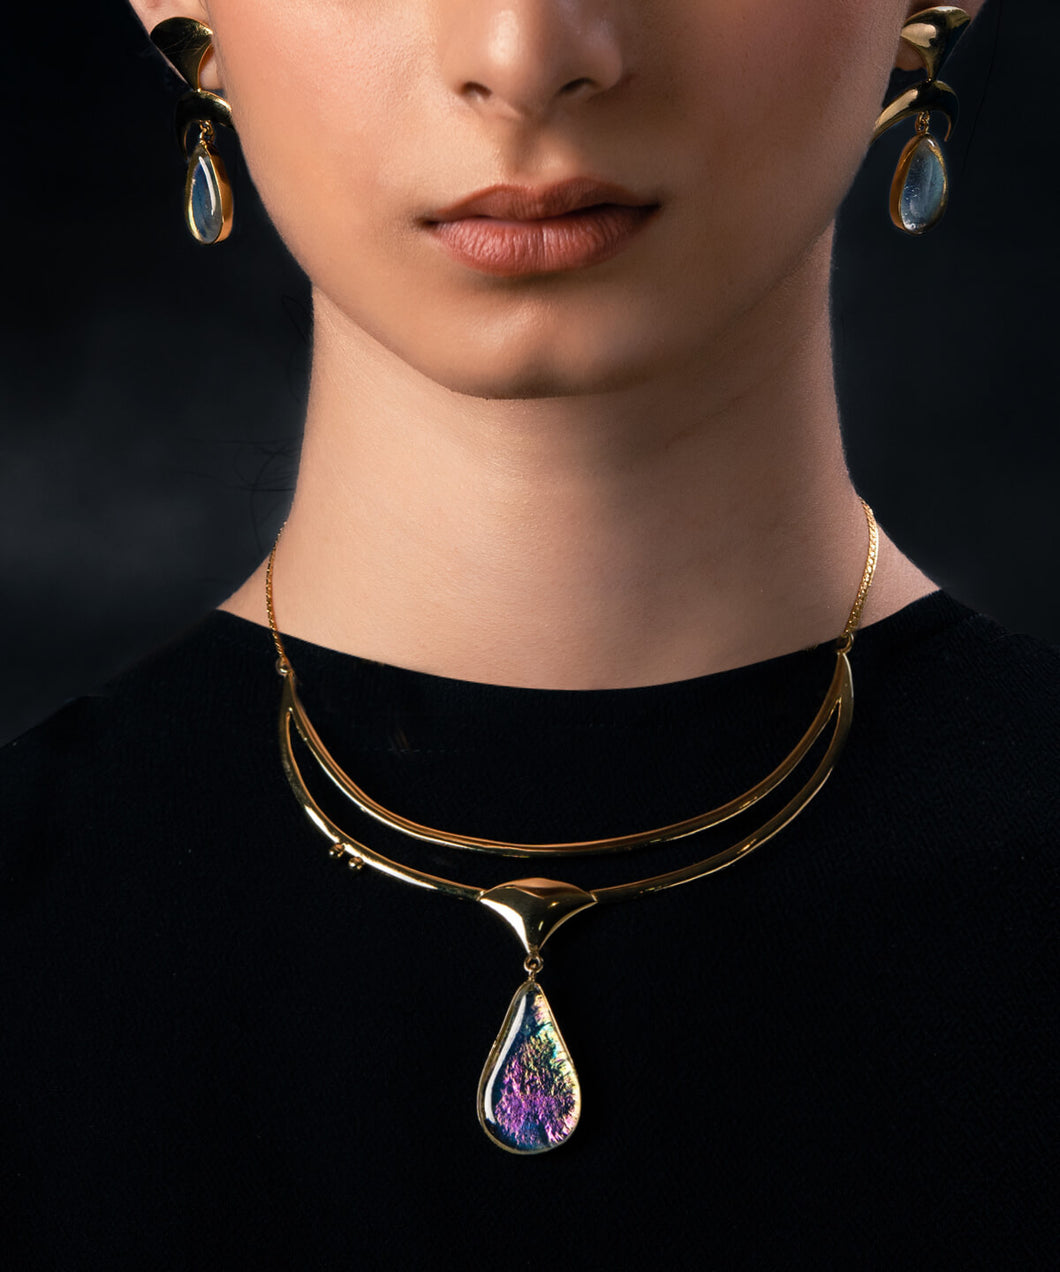 Roche Necklace